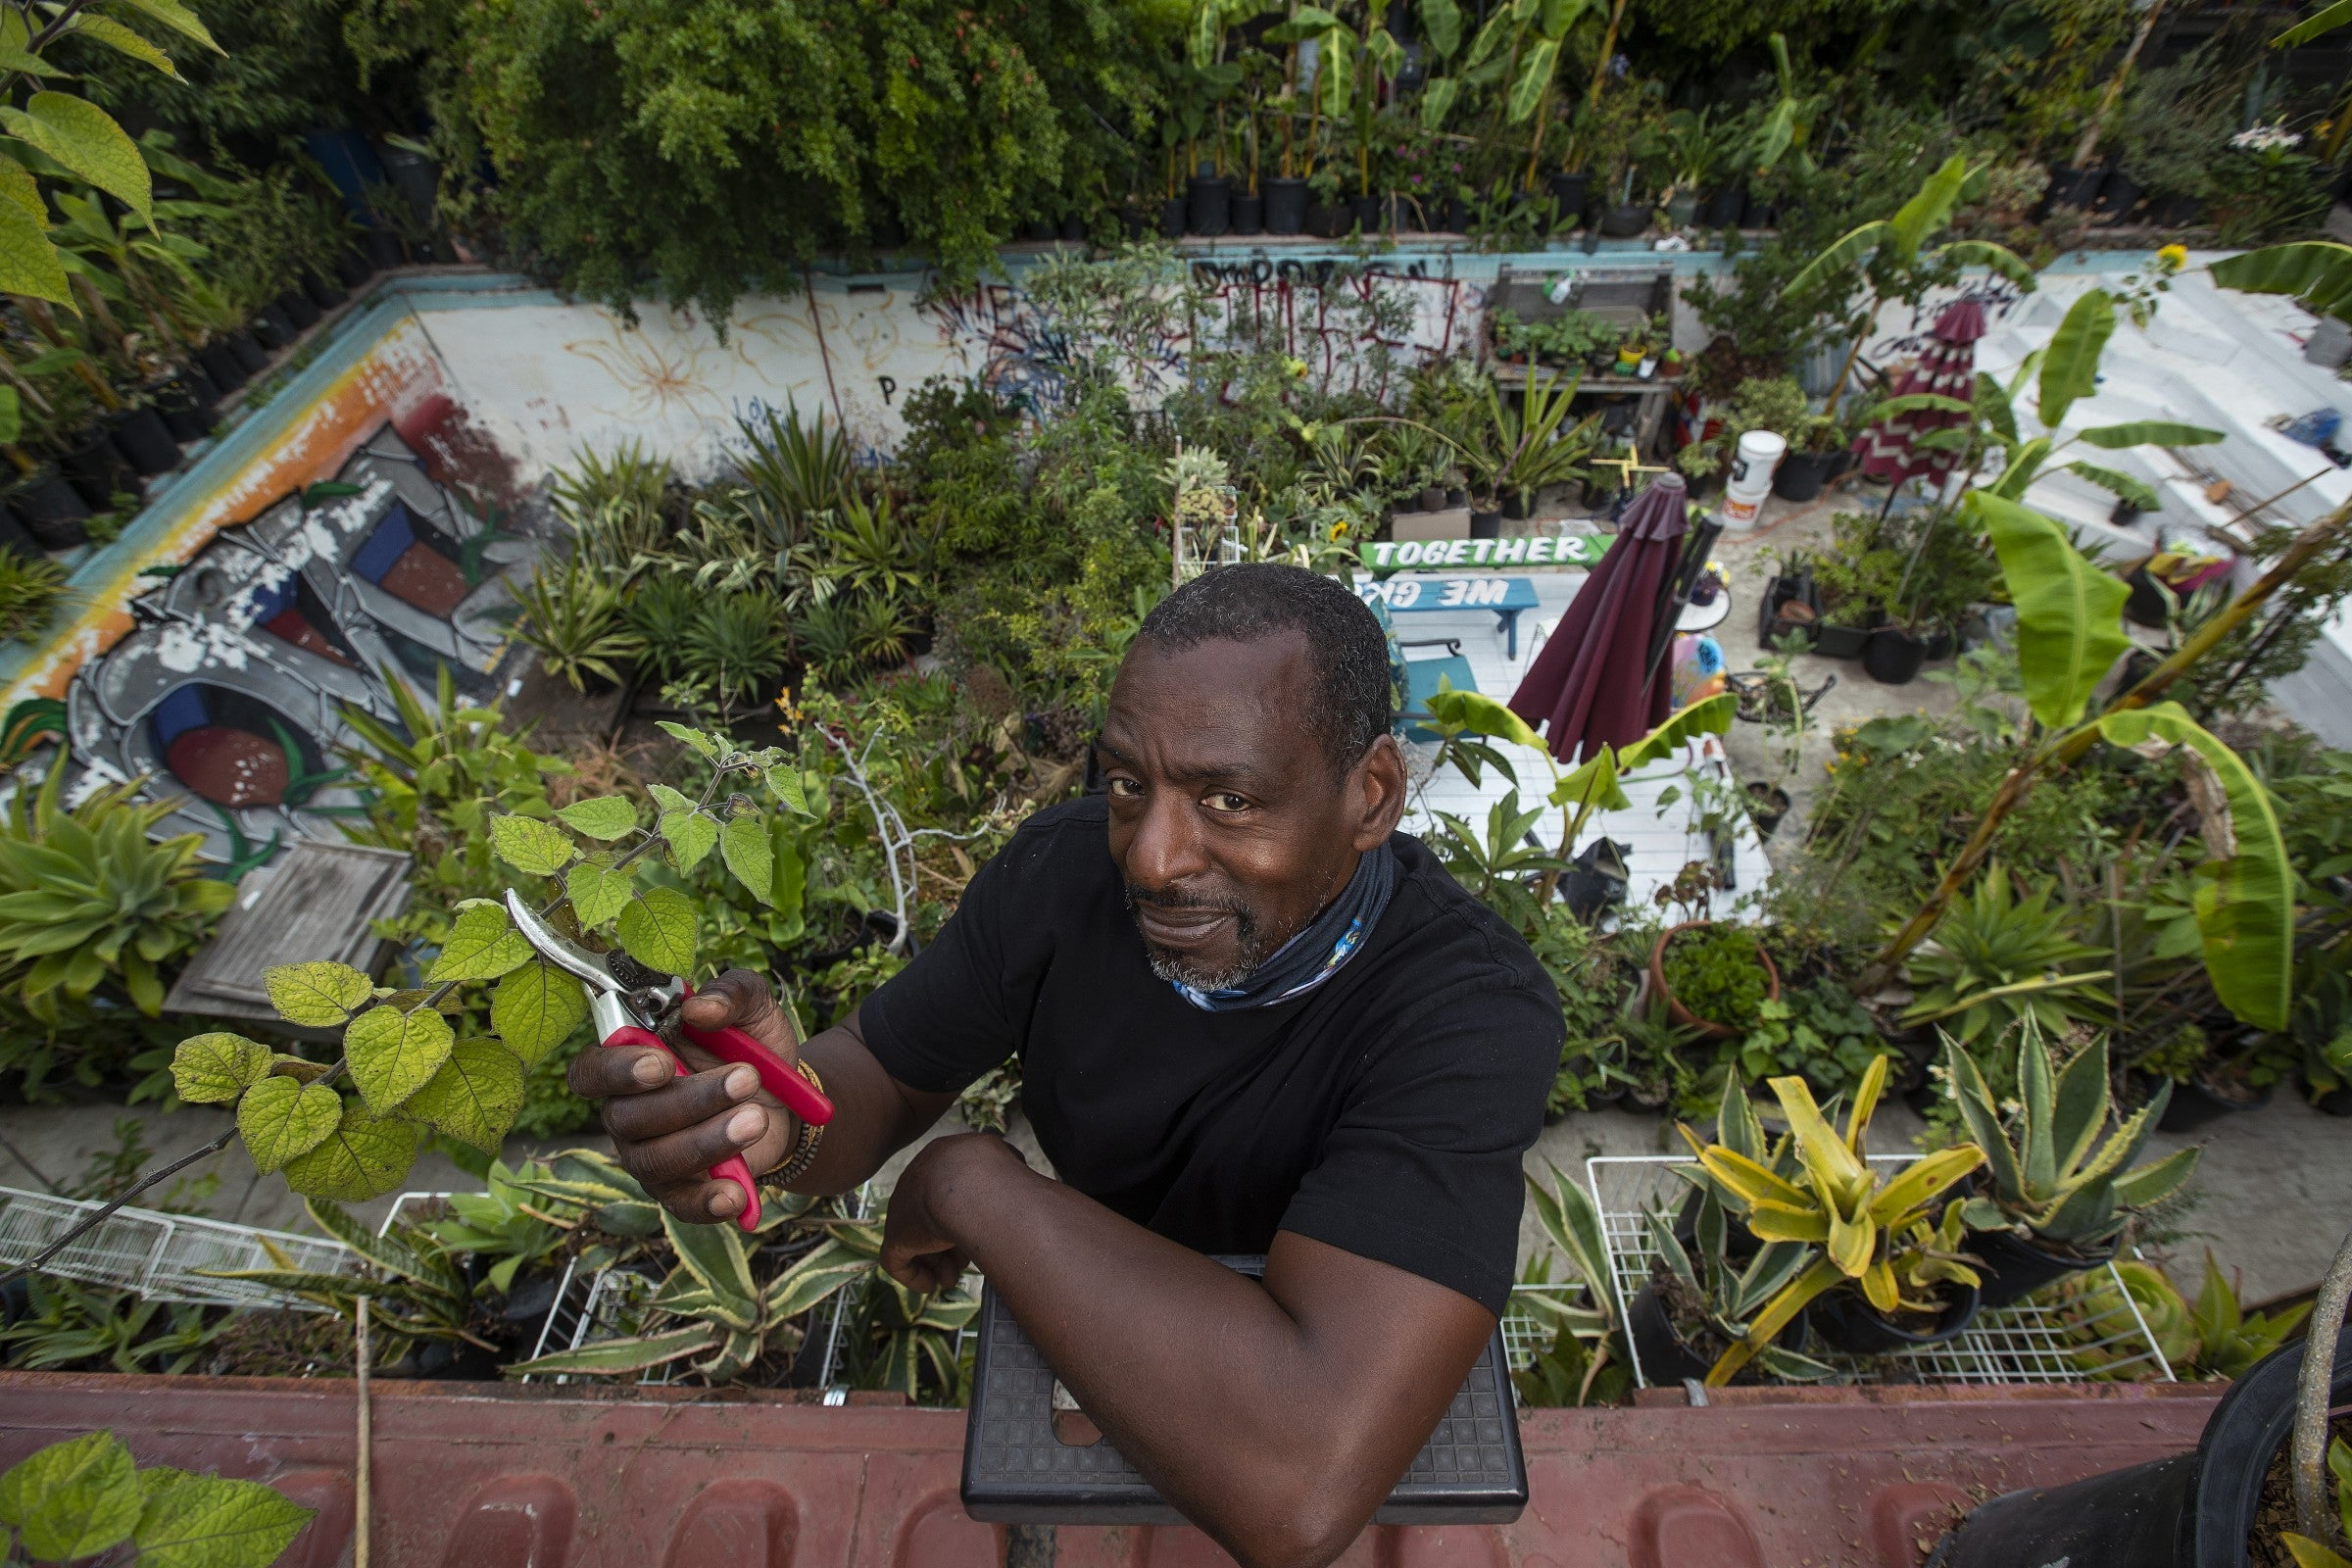 Ron Finley with his in pool garden in the background